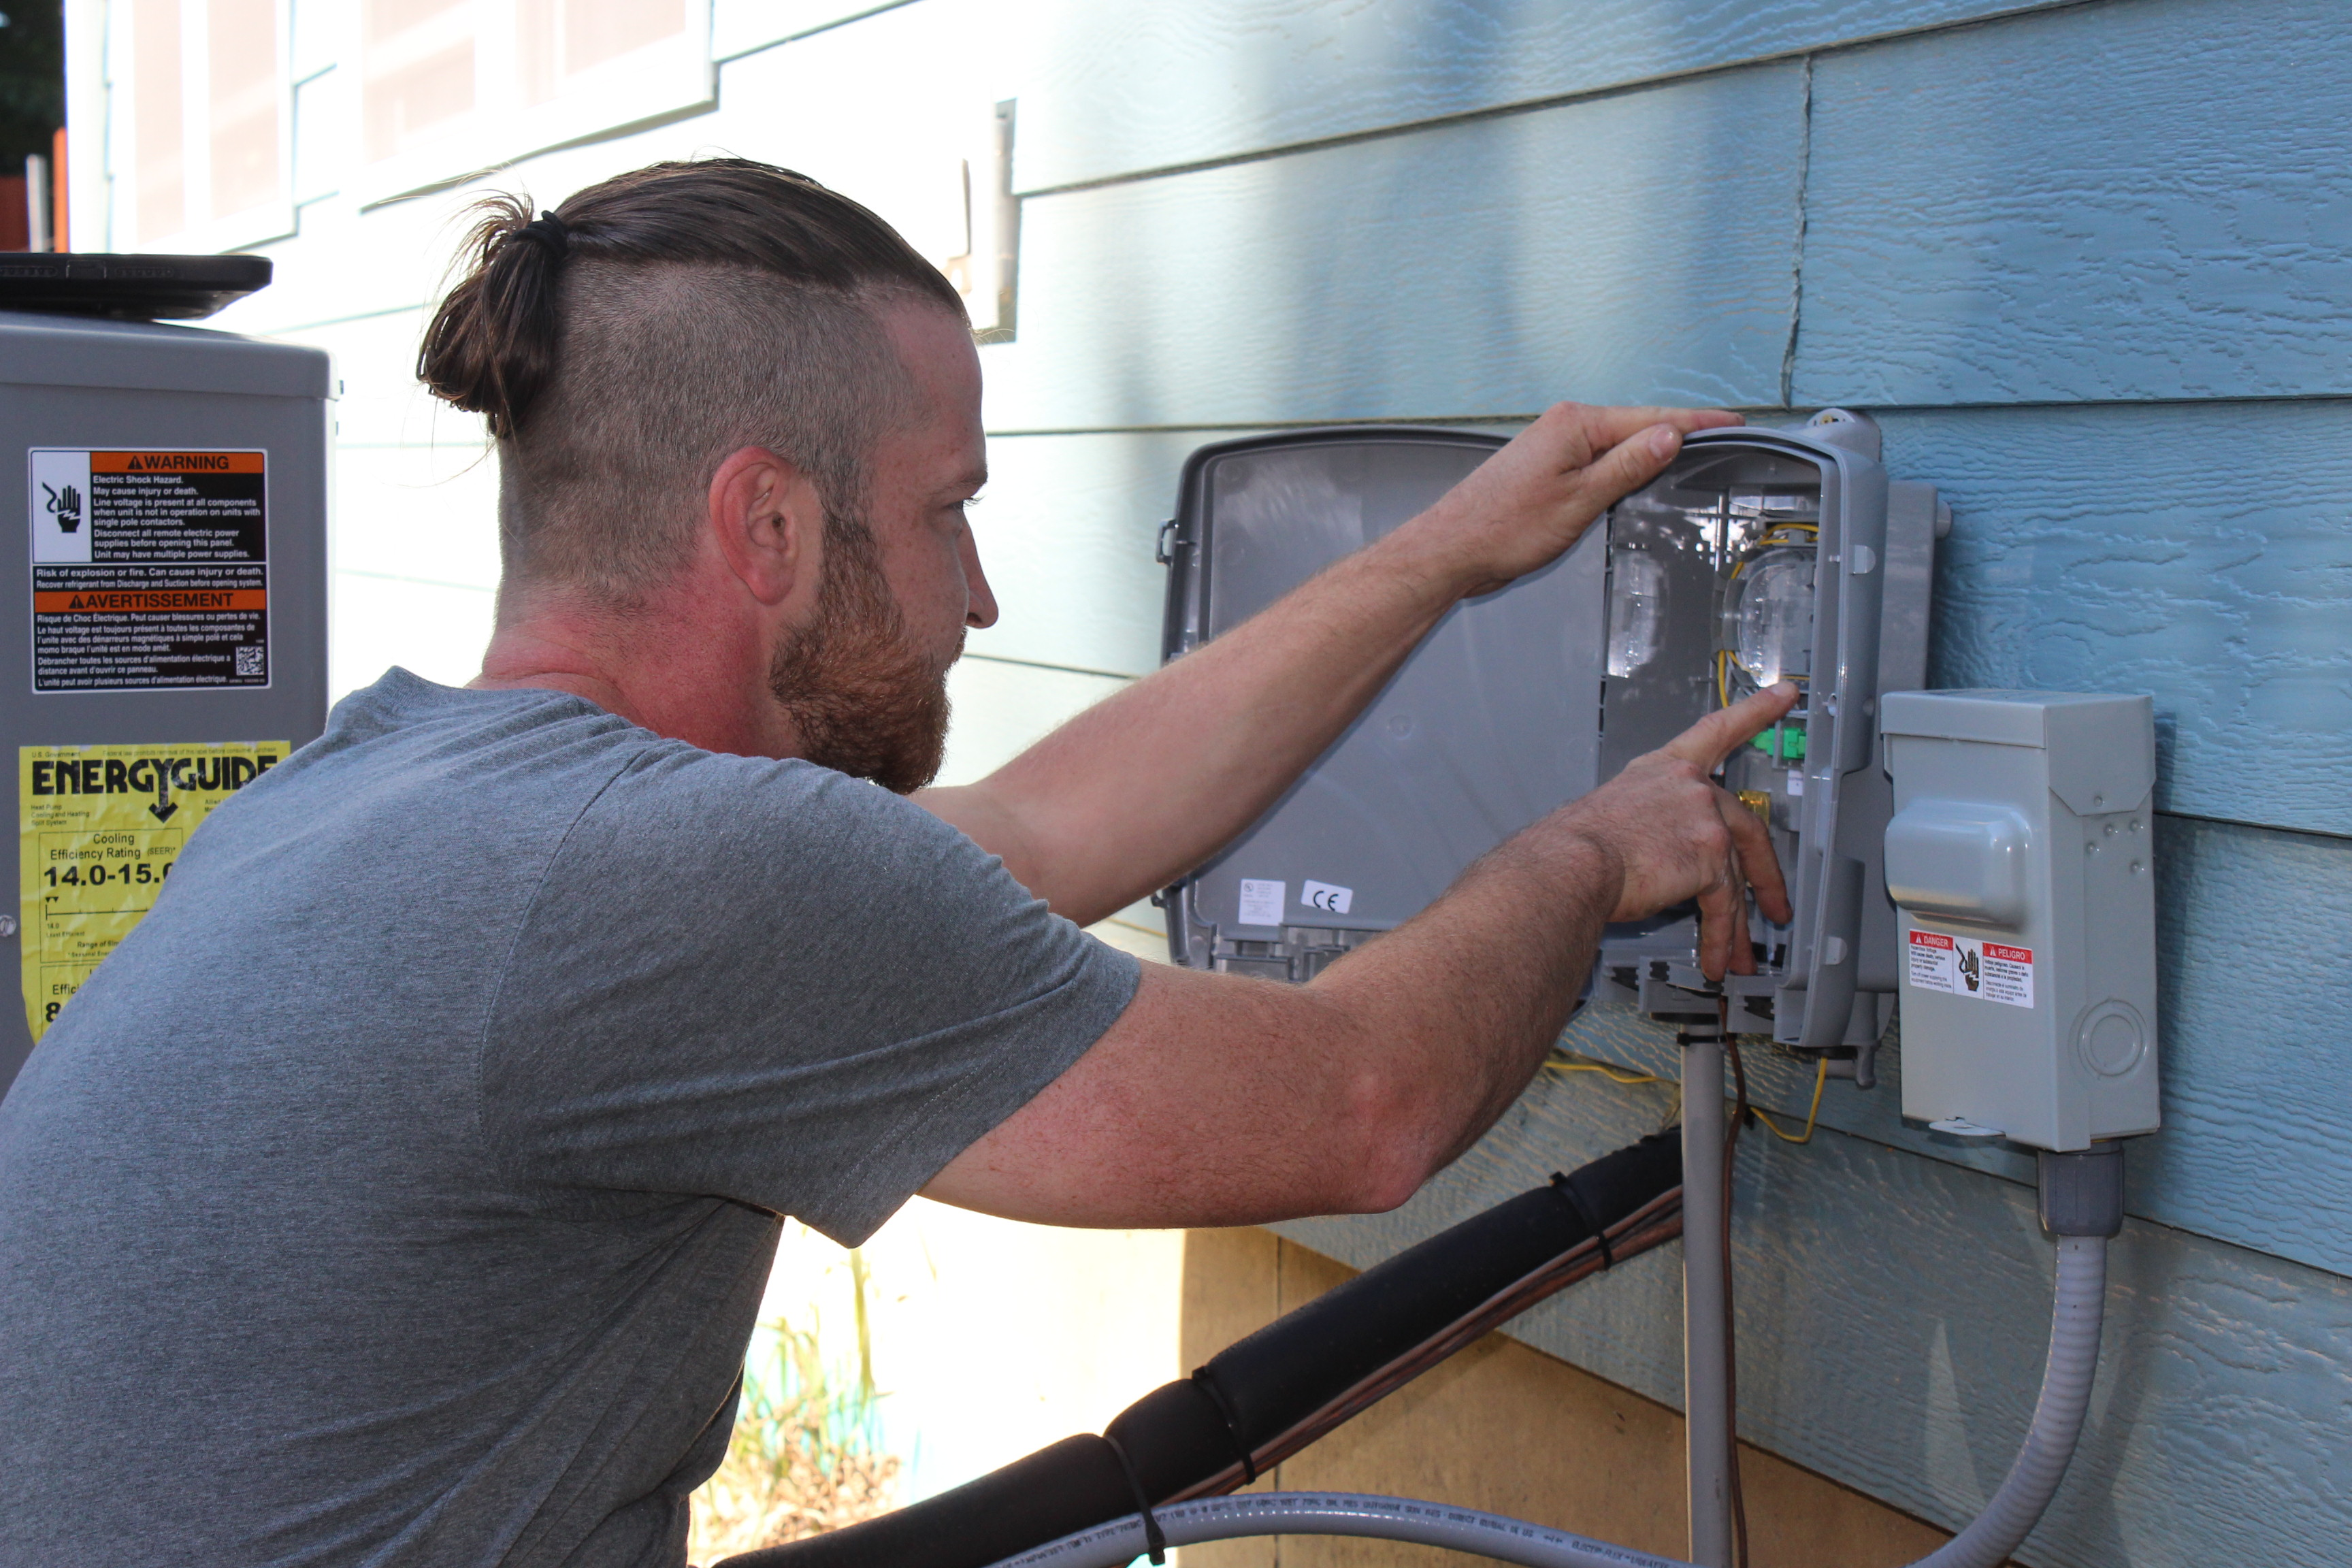 Fiber technician installing hardware to side of house